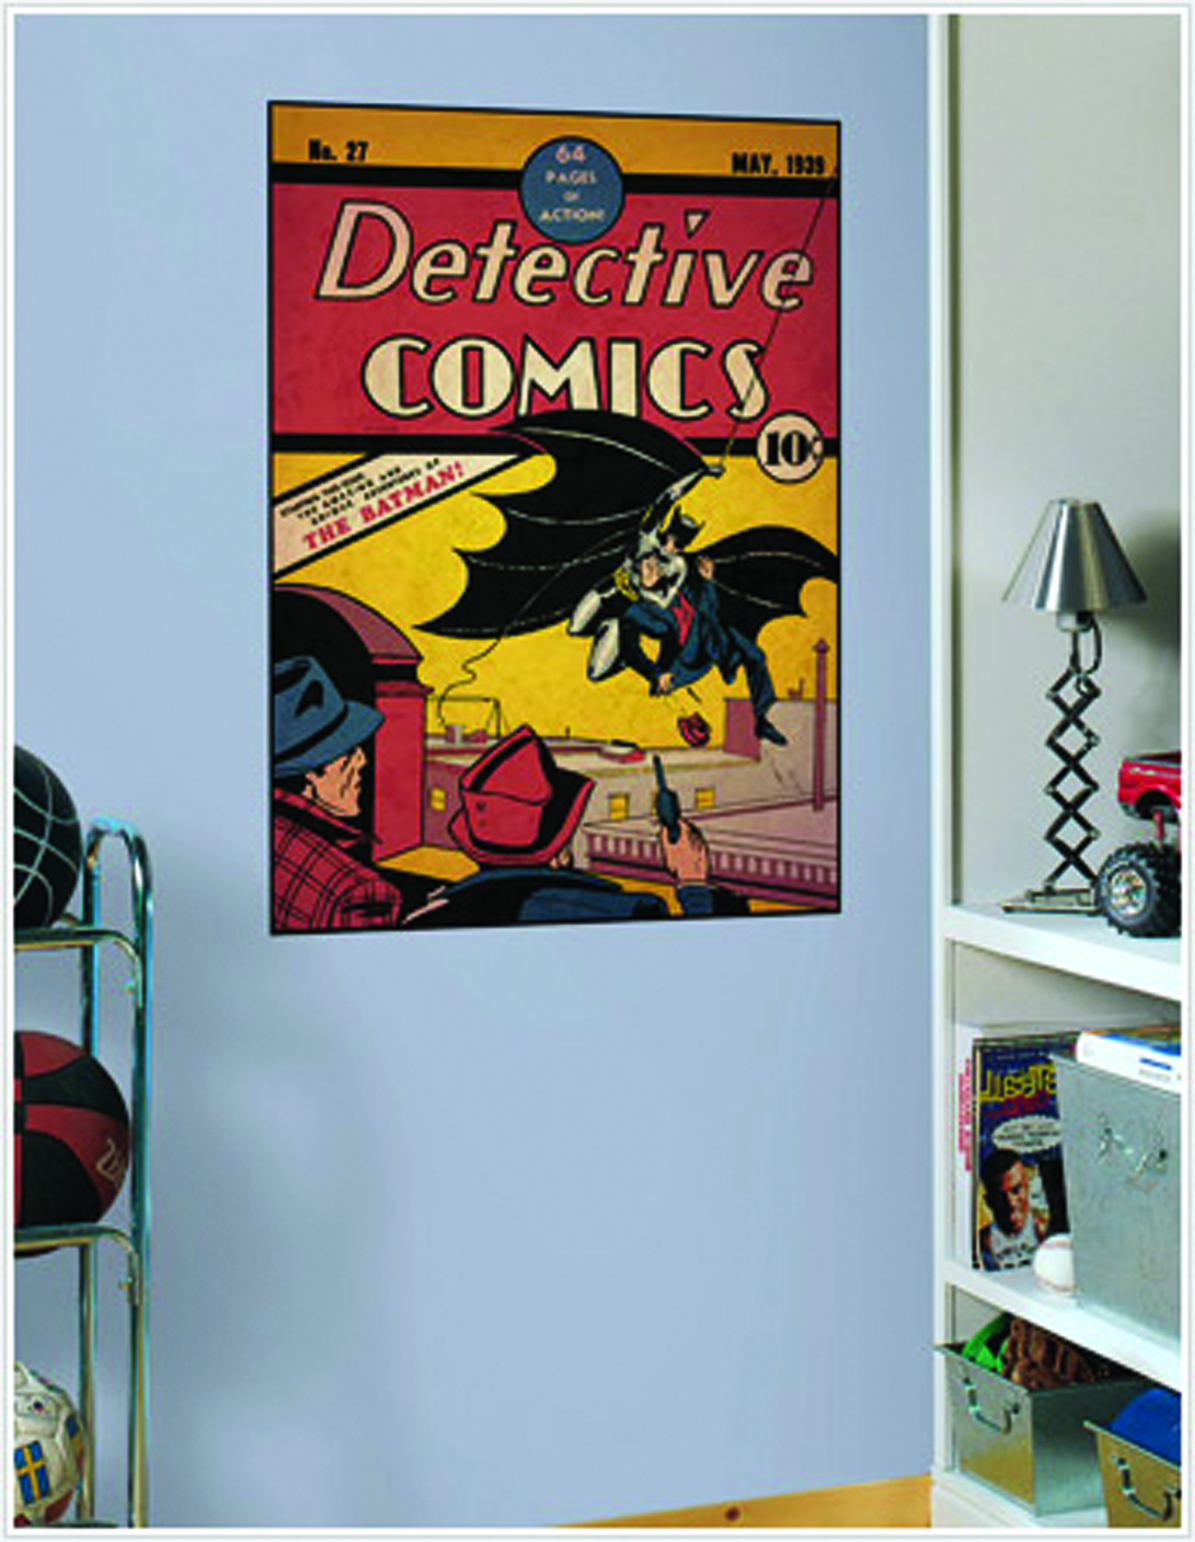 DETECTIVE COMICS BATMAN COMIC COVER GIANT WALL DECAL